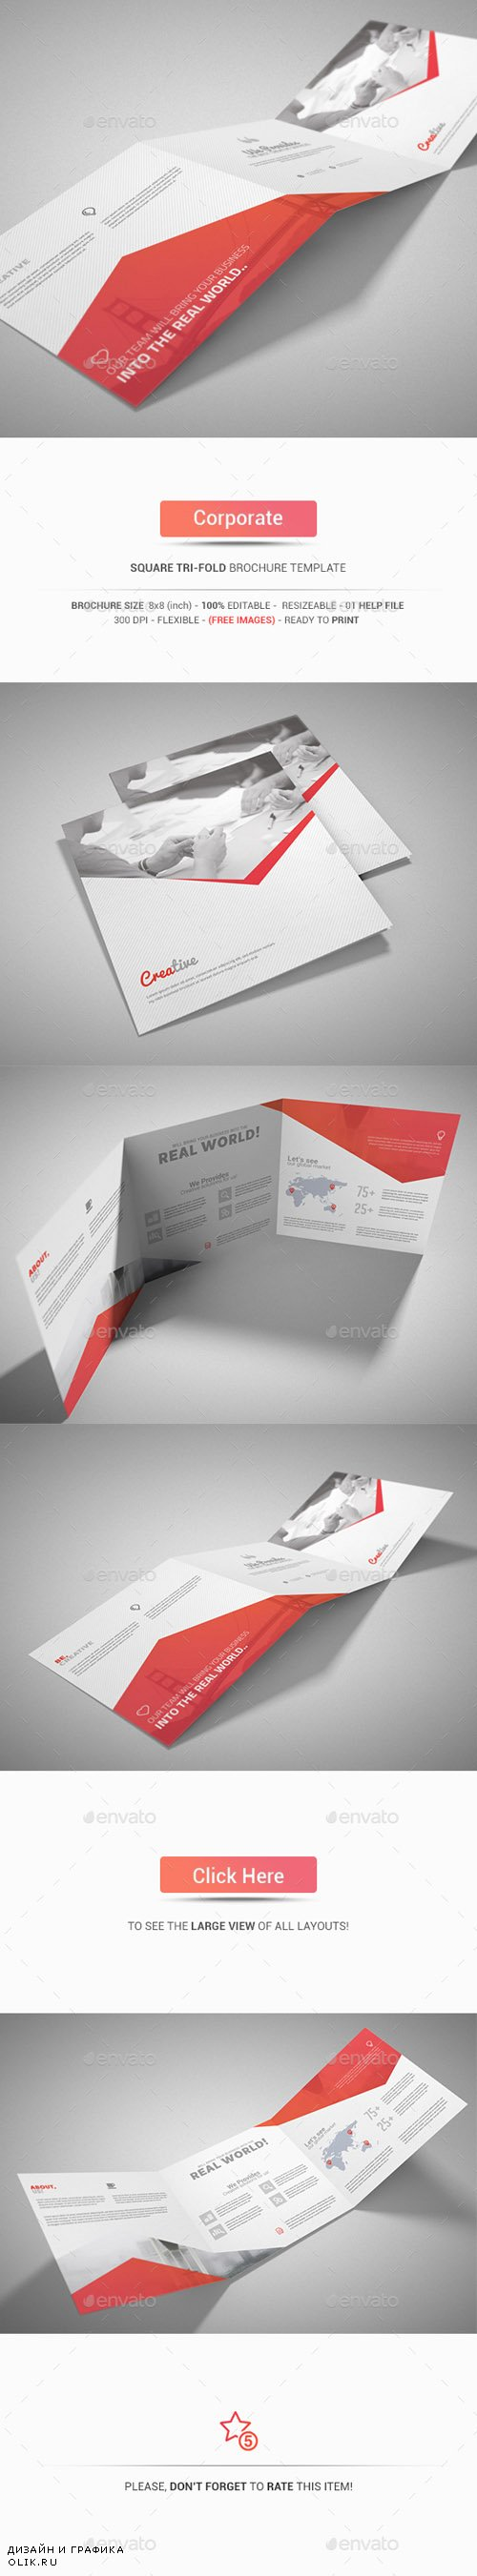 GR - Square Tri-Fold Brochure - Corporate 13480314